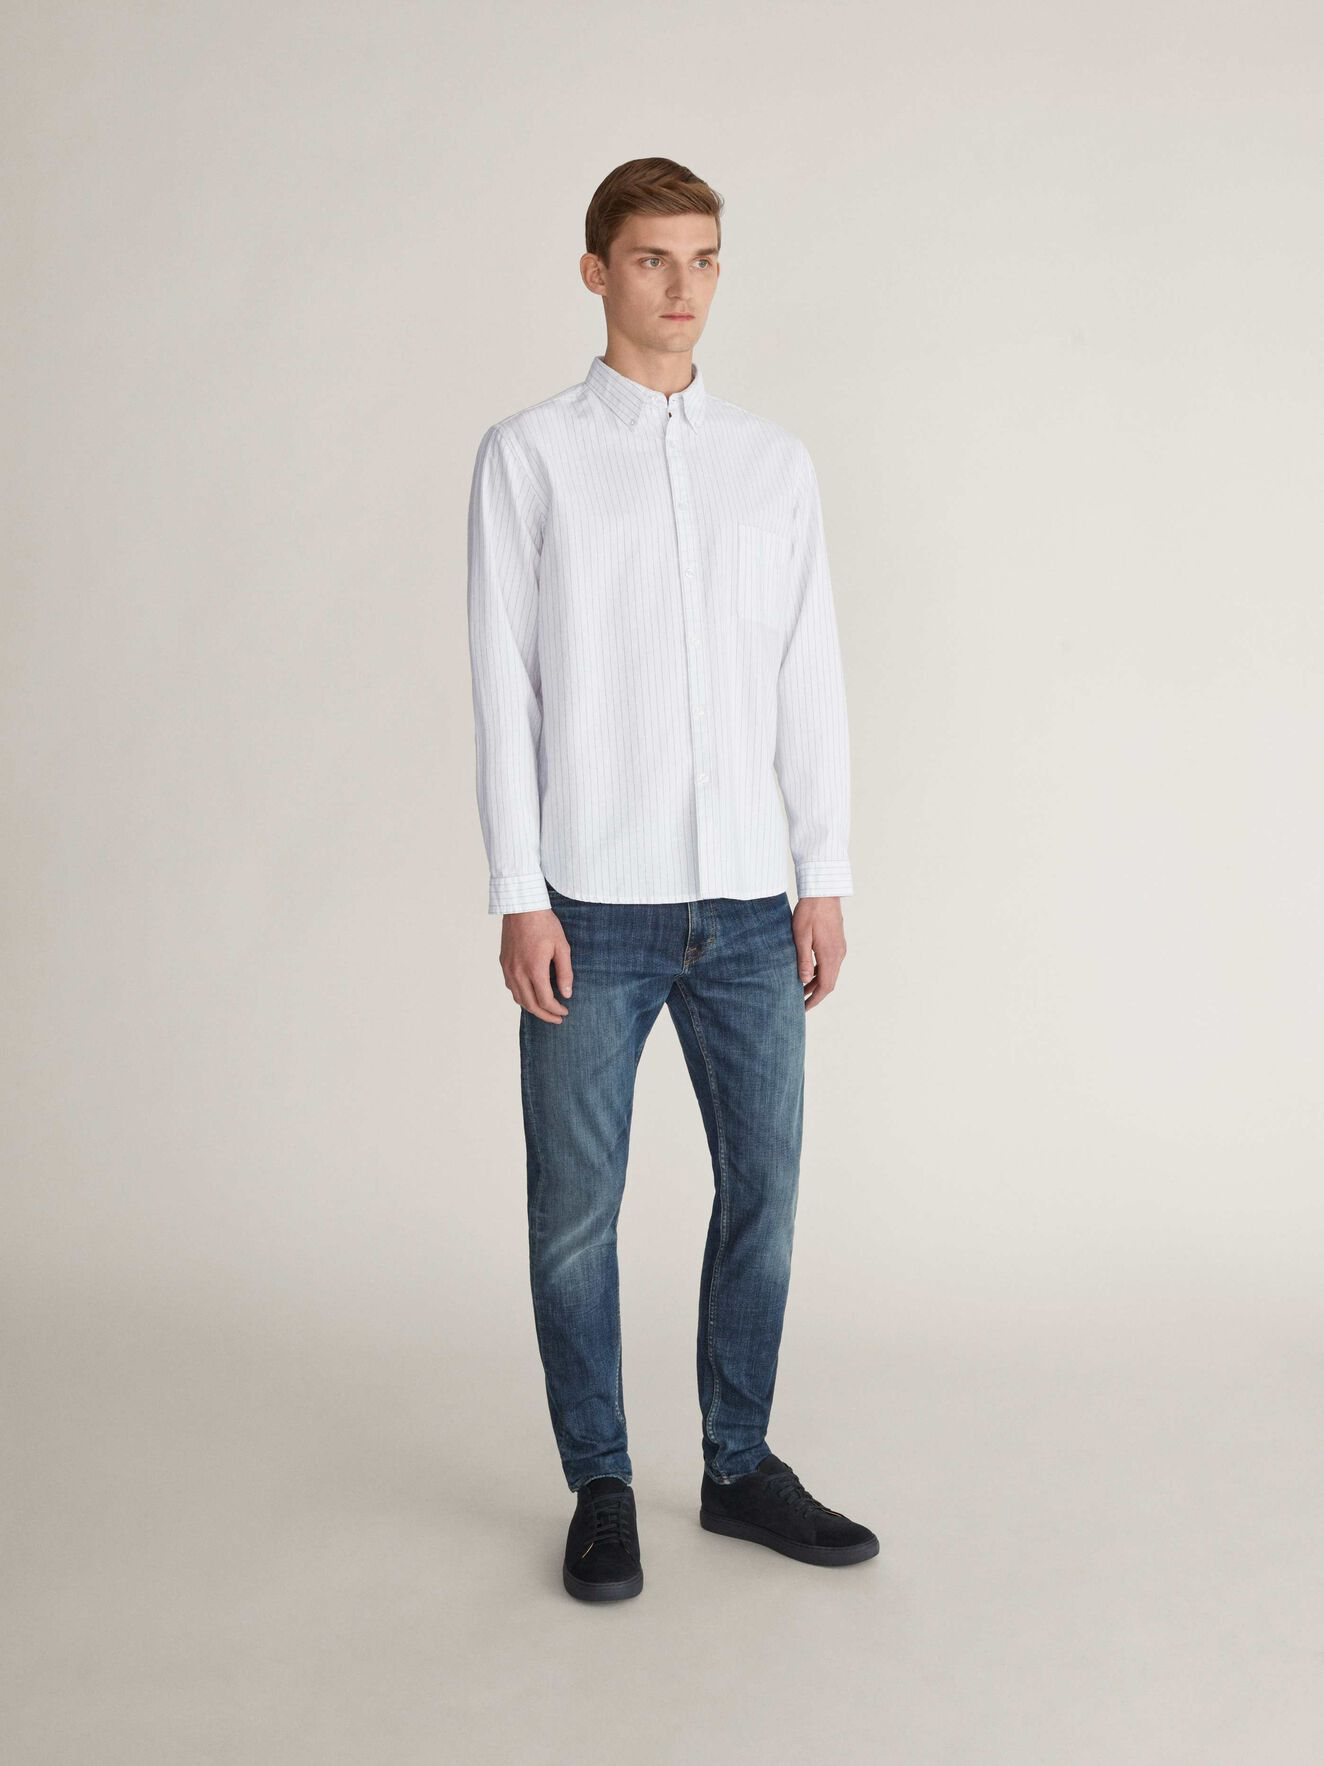 Royce Shirt in White from Tiger of Sweden